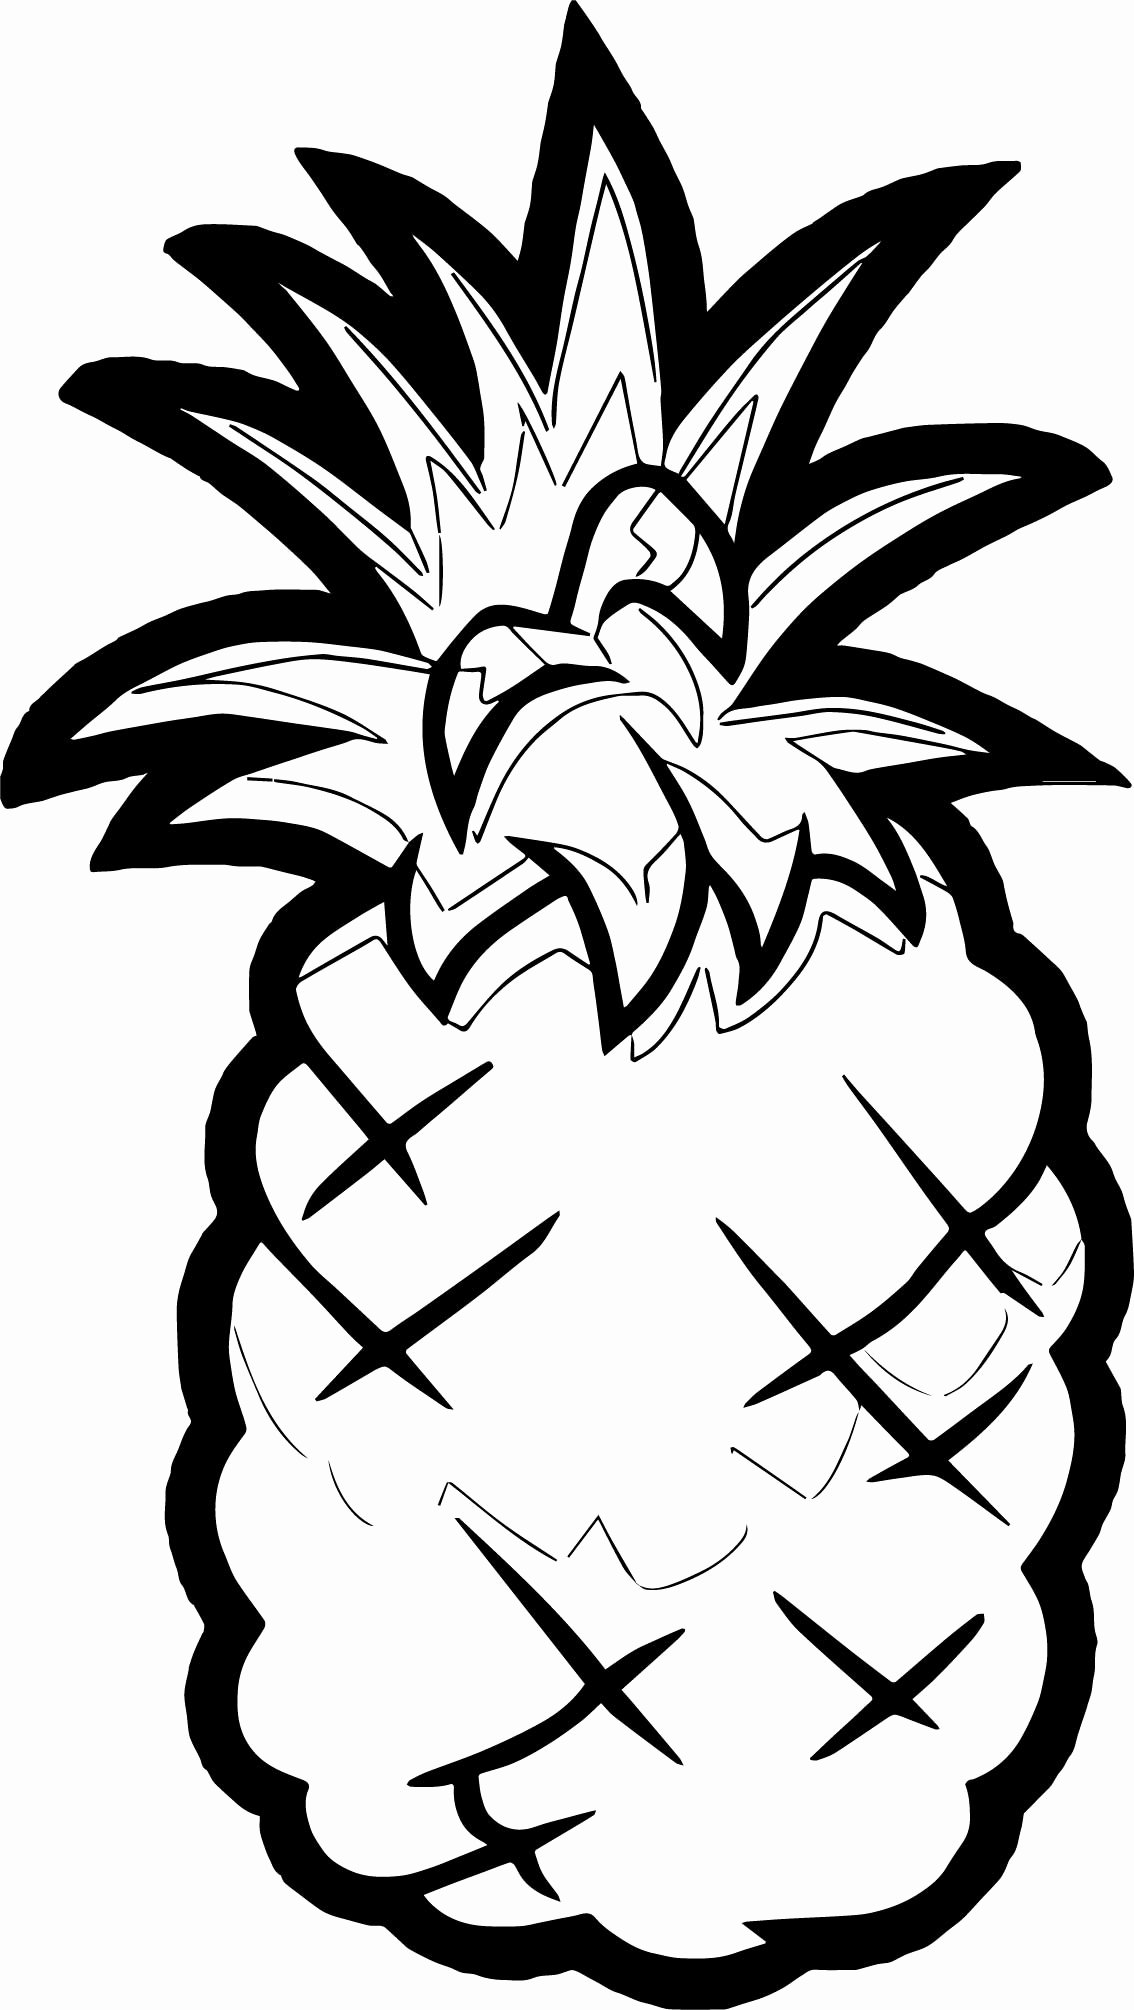 Pineapple Template Printable Elegant Pineapple Coloring Page Fruit Fruits Pages Grig3